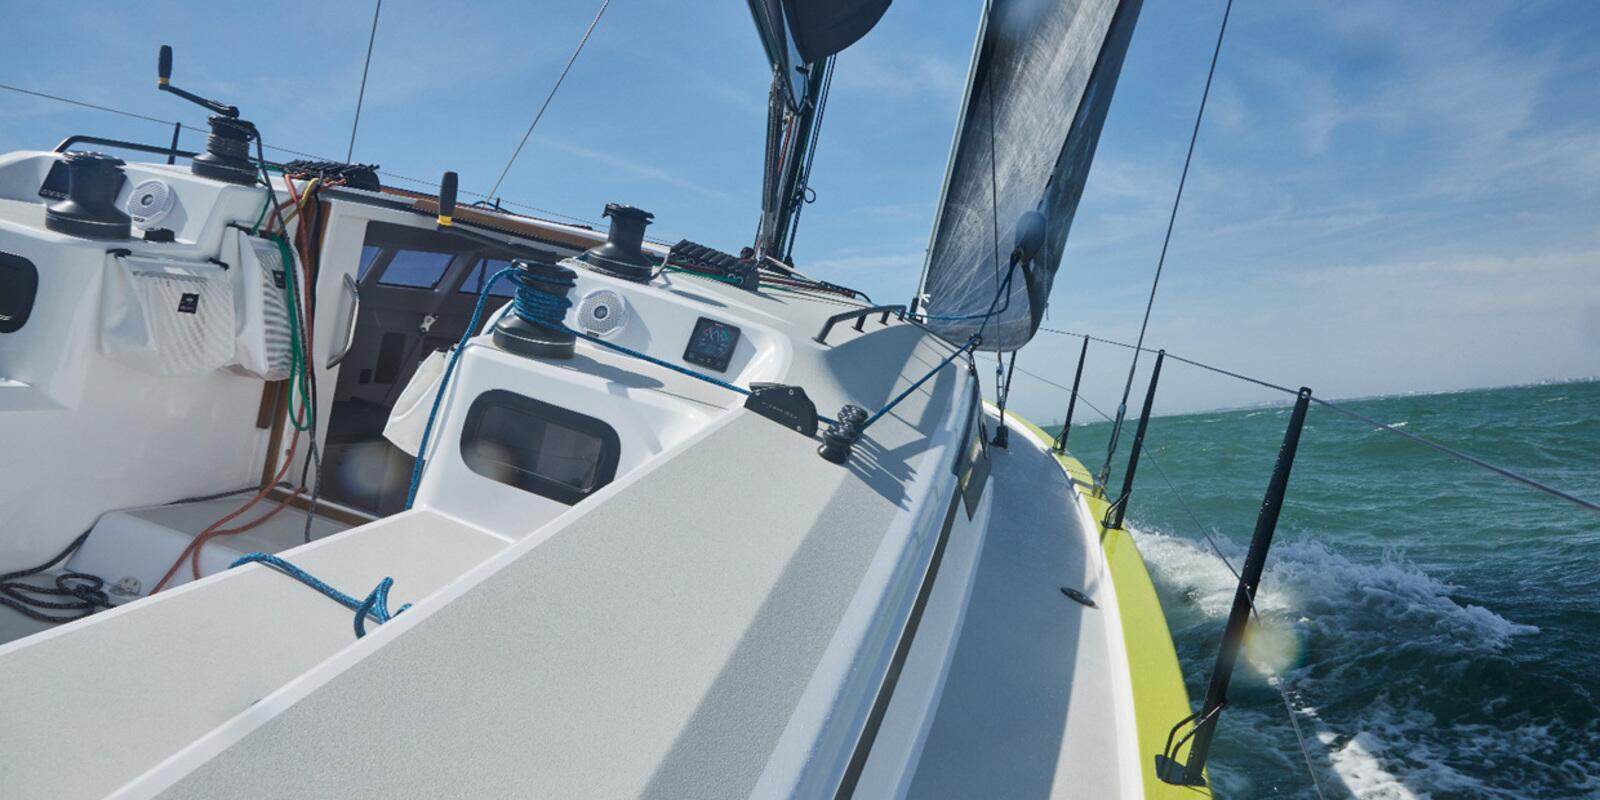 Sailing course - Towards the south, heading for the Grenadines on RM 11.80